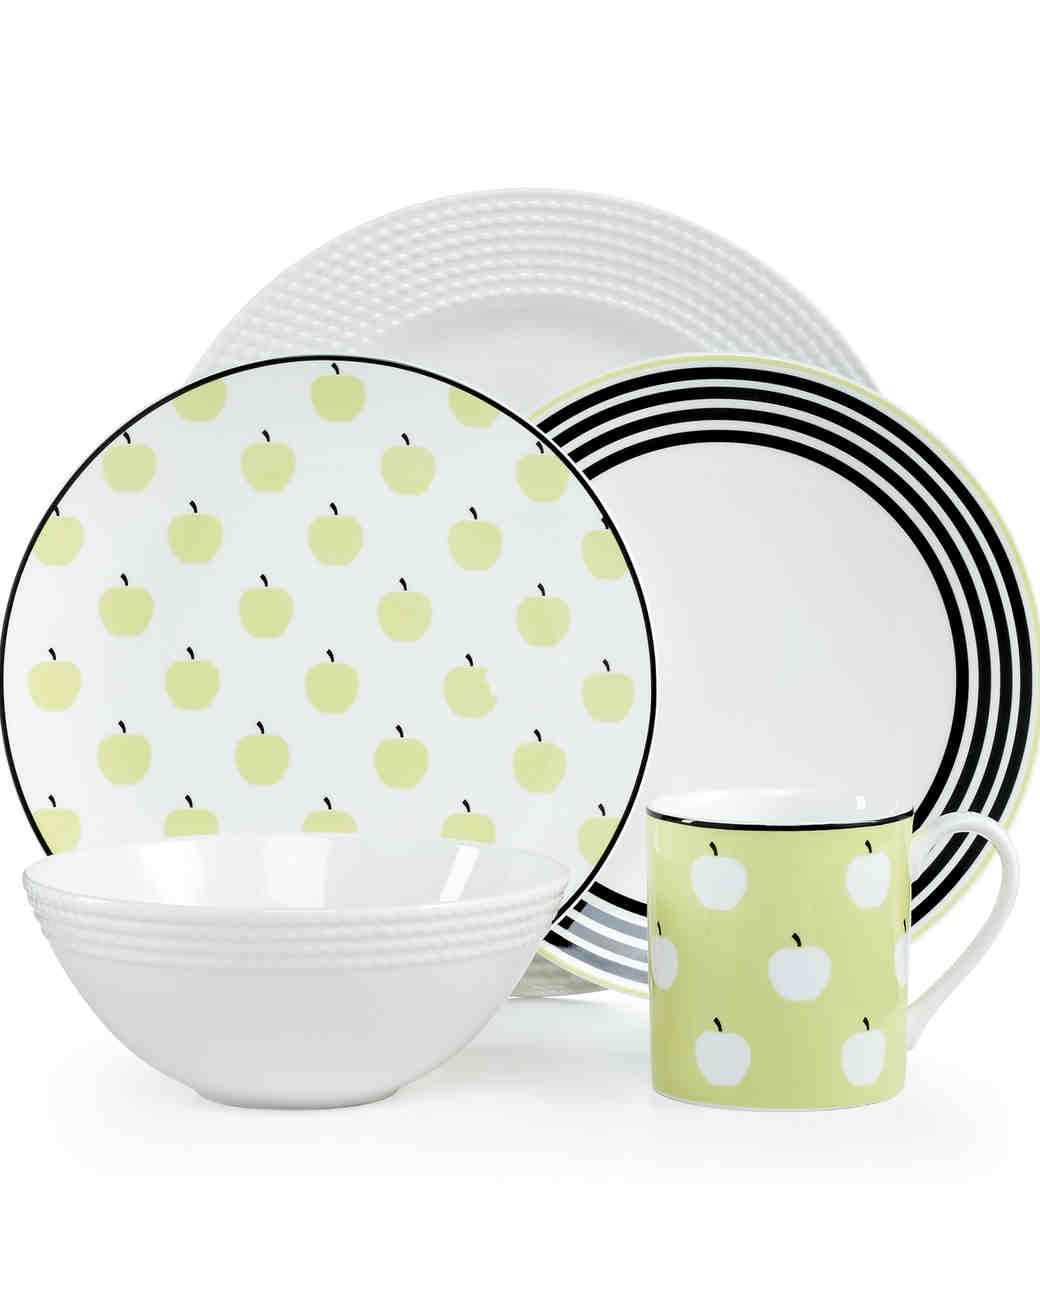 macys-registry-1-ksny-wickford-dinnerware-collection-2238552-0115.jpg